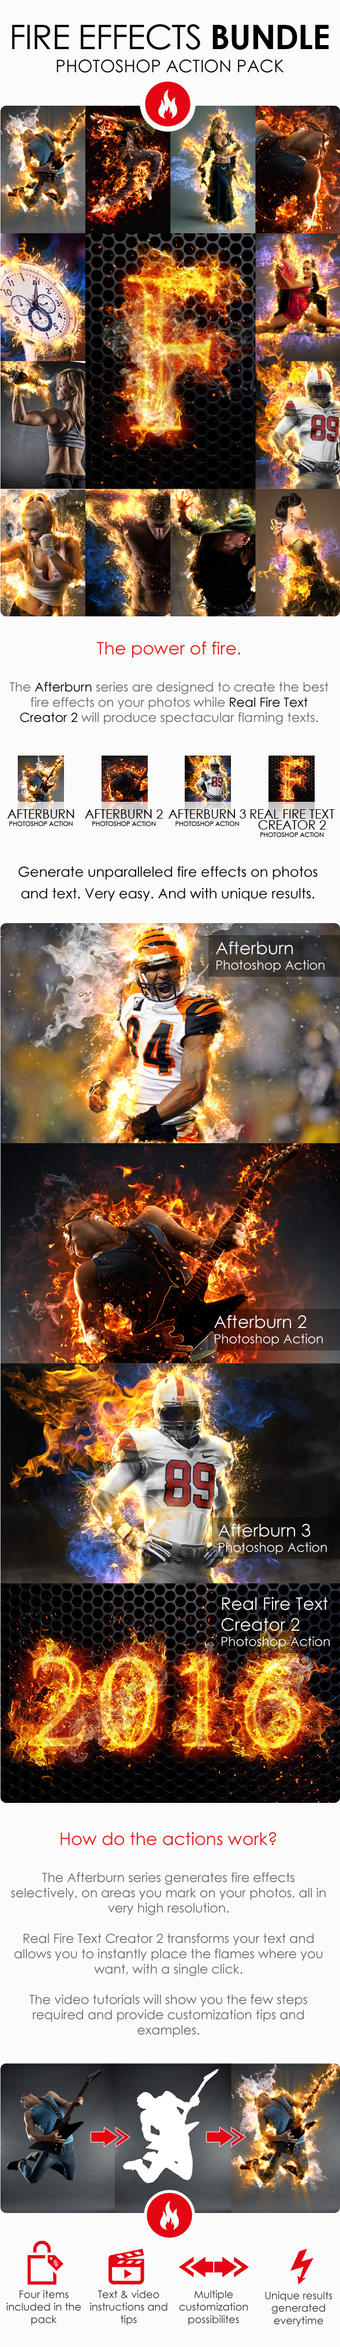 Fire Effects Bundle - Photoshop Action by ArtoriusGothicus